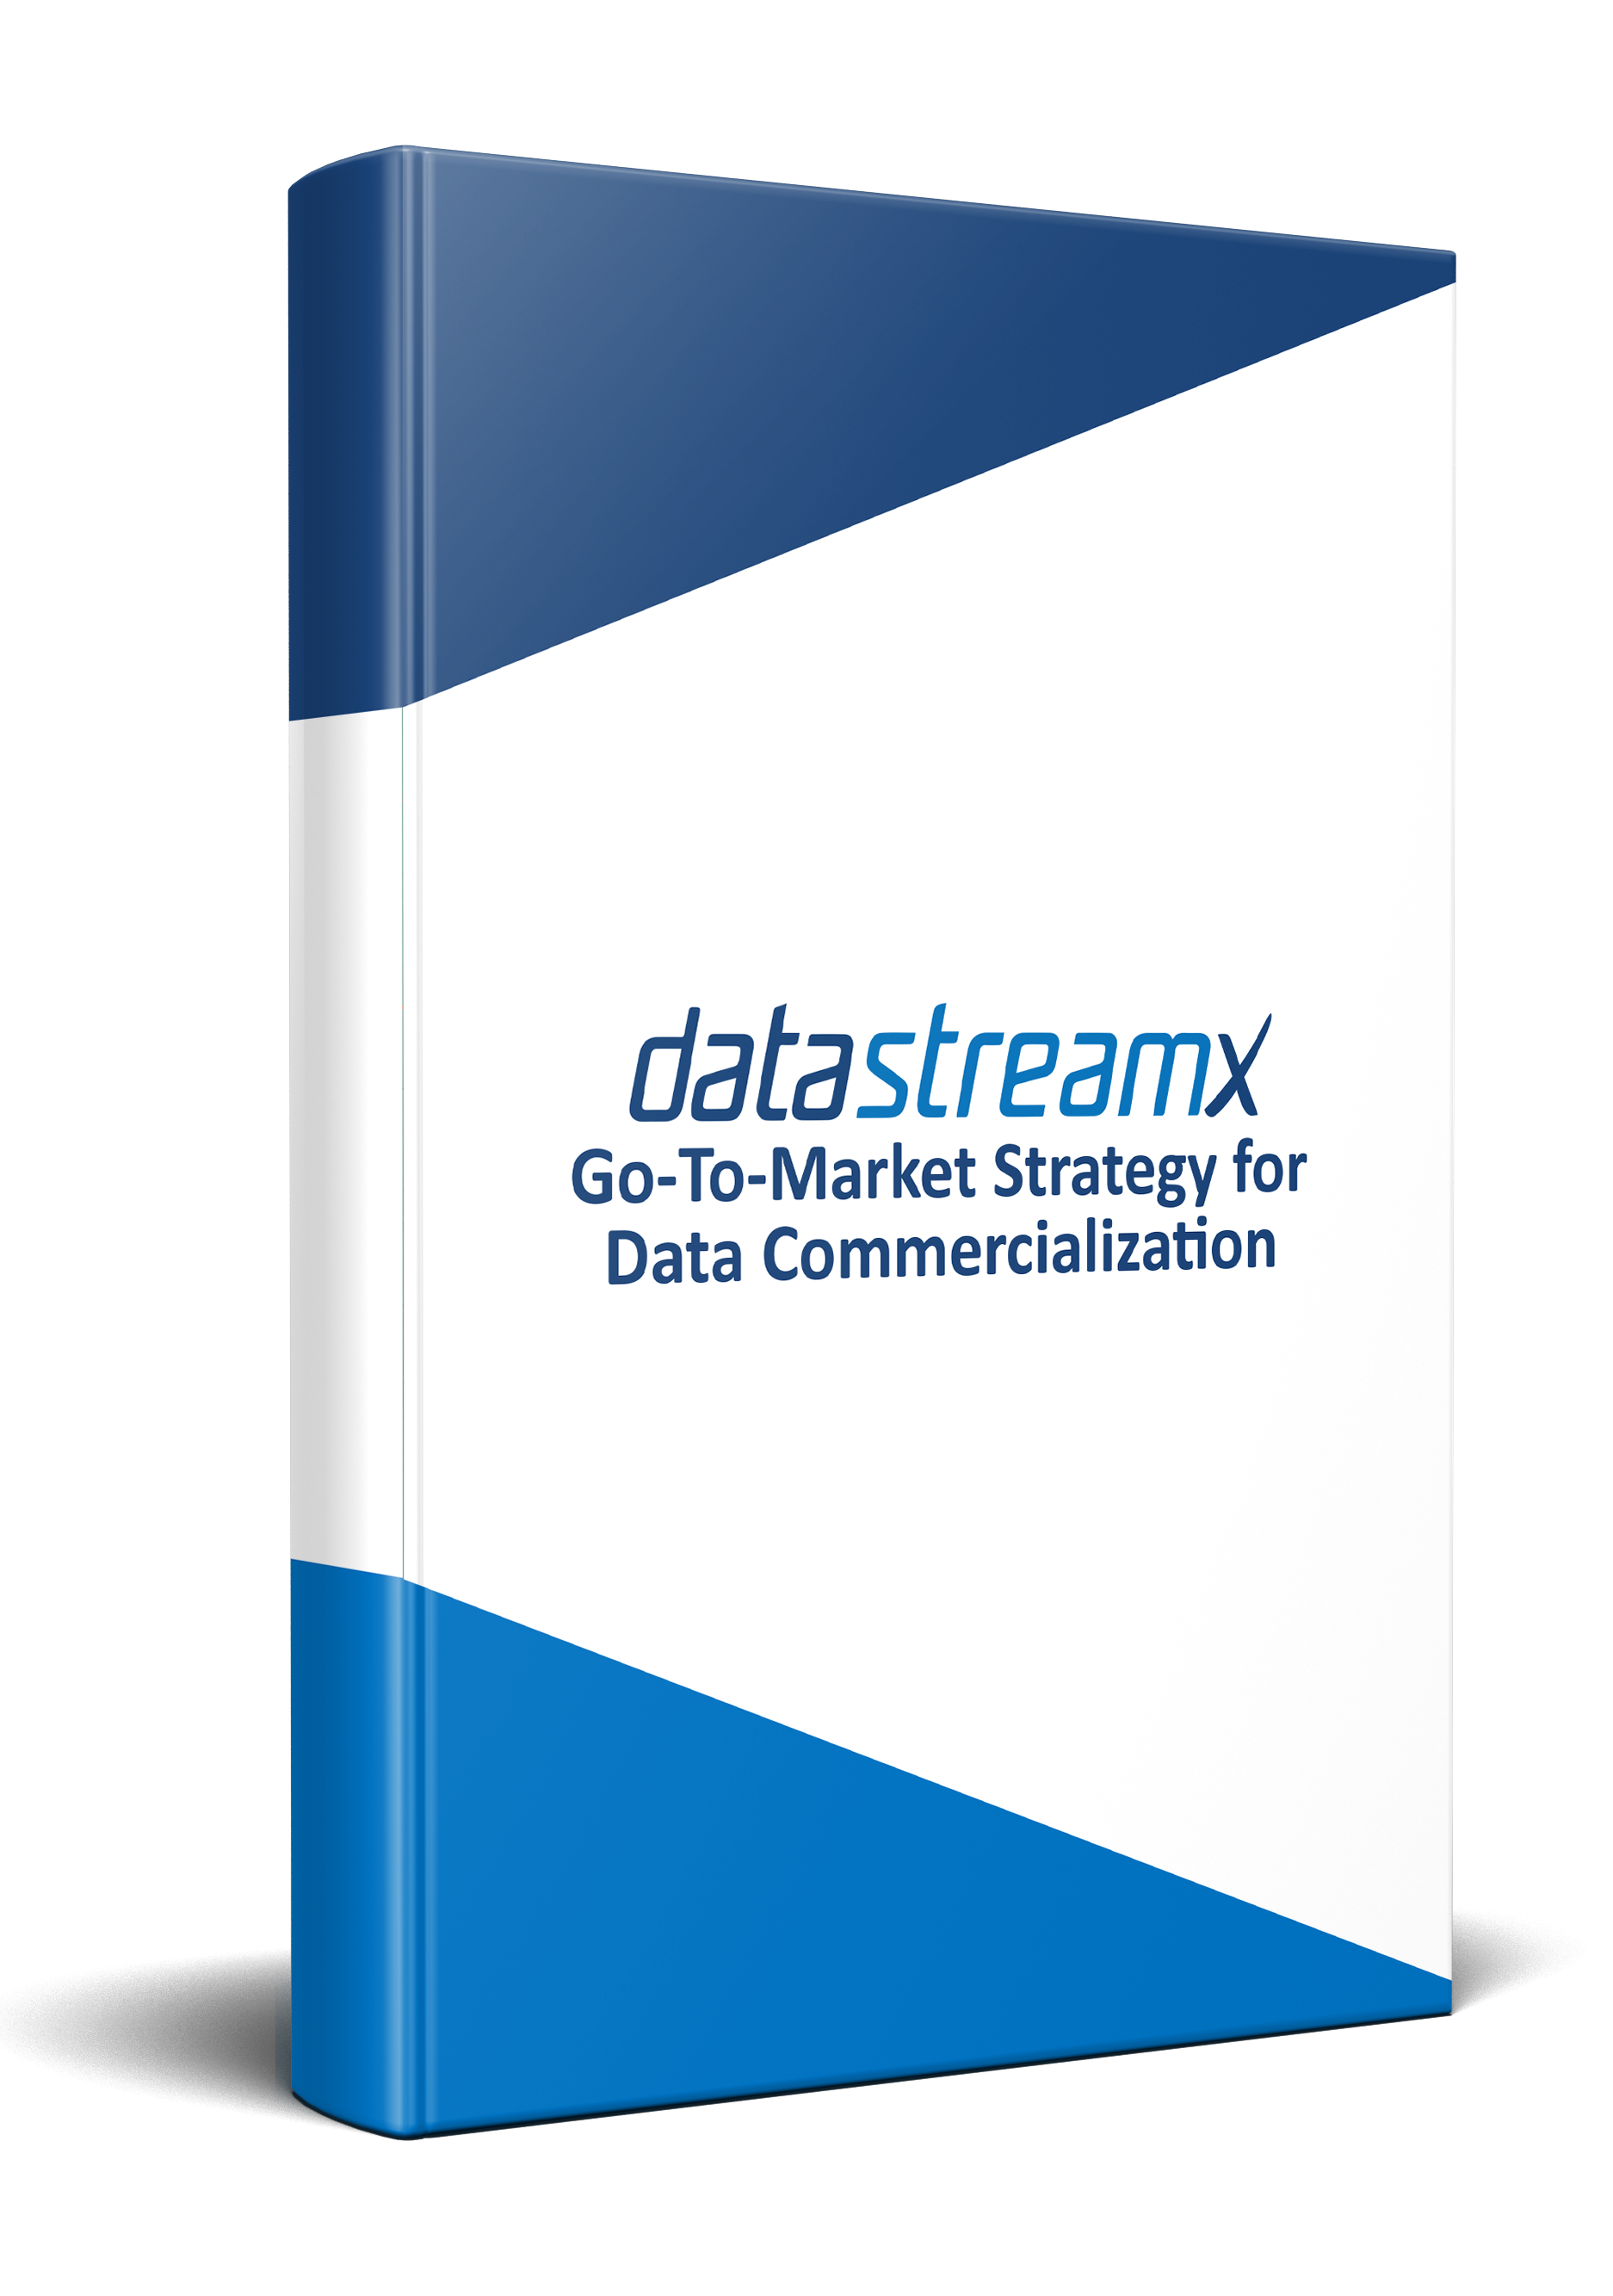 Go-To-Market Strategy for Data Commercialization